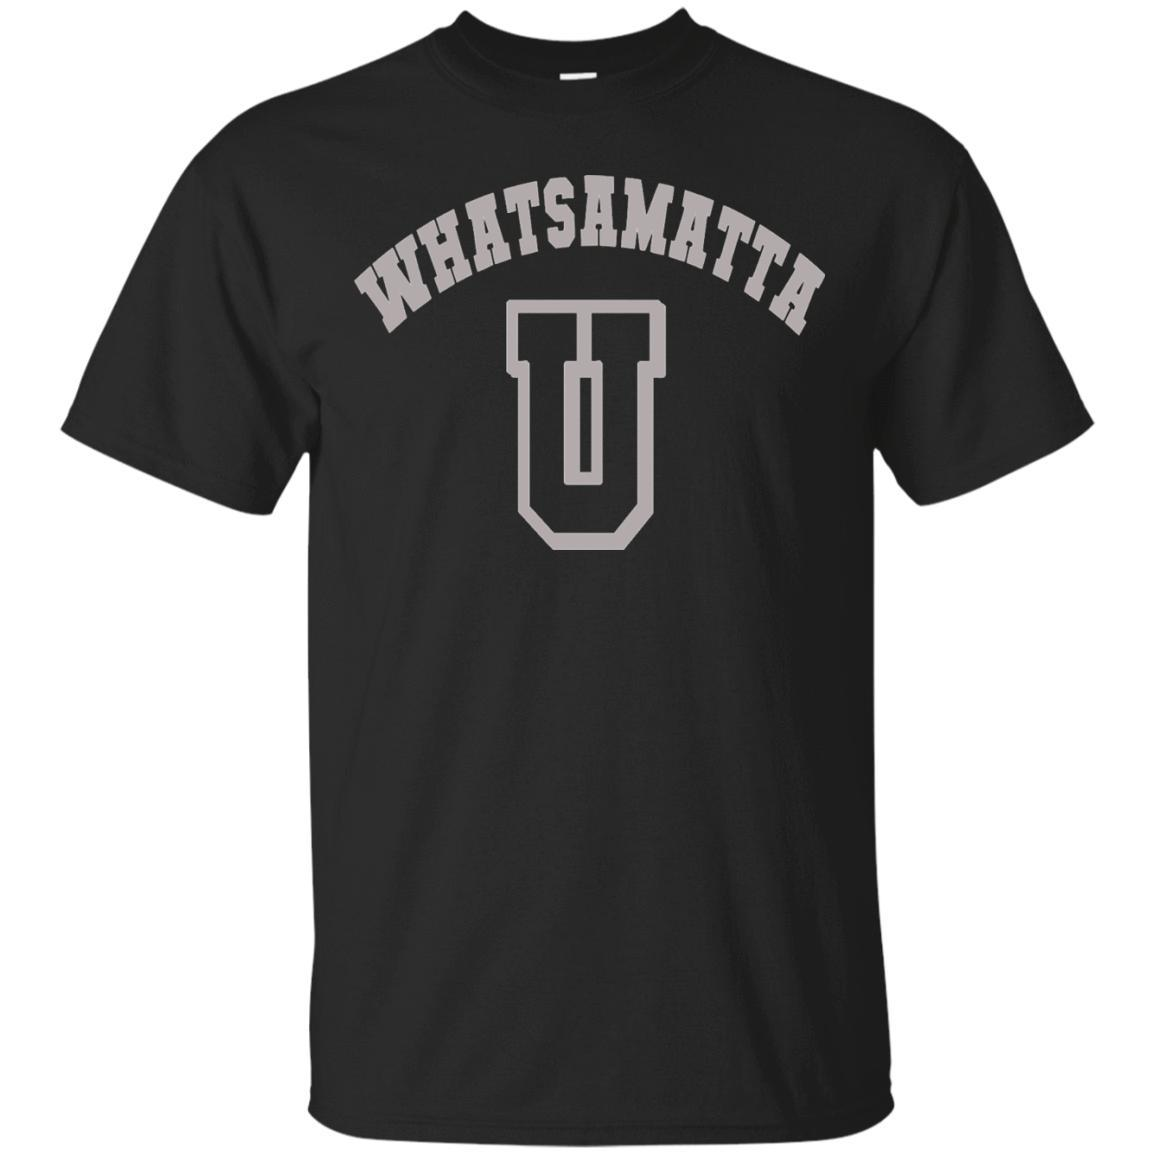 Whatsamatta U Shirt for Italians